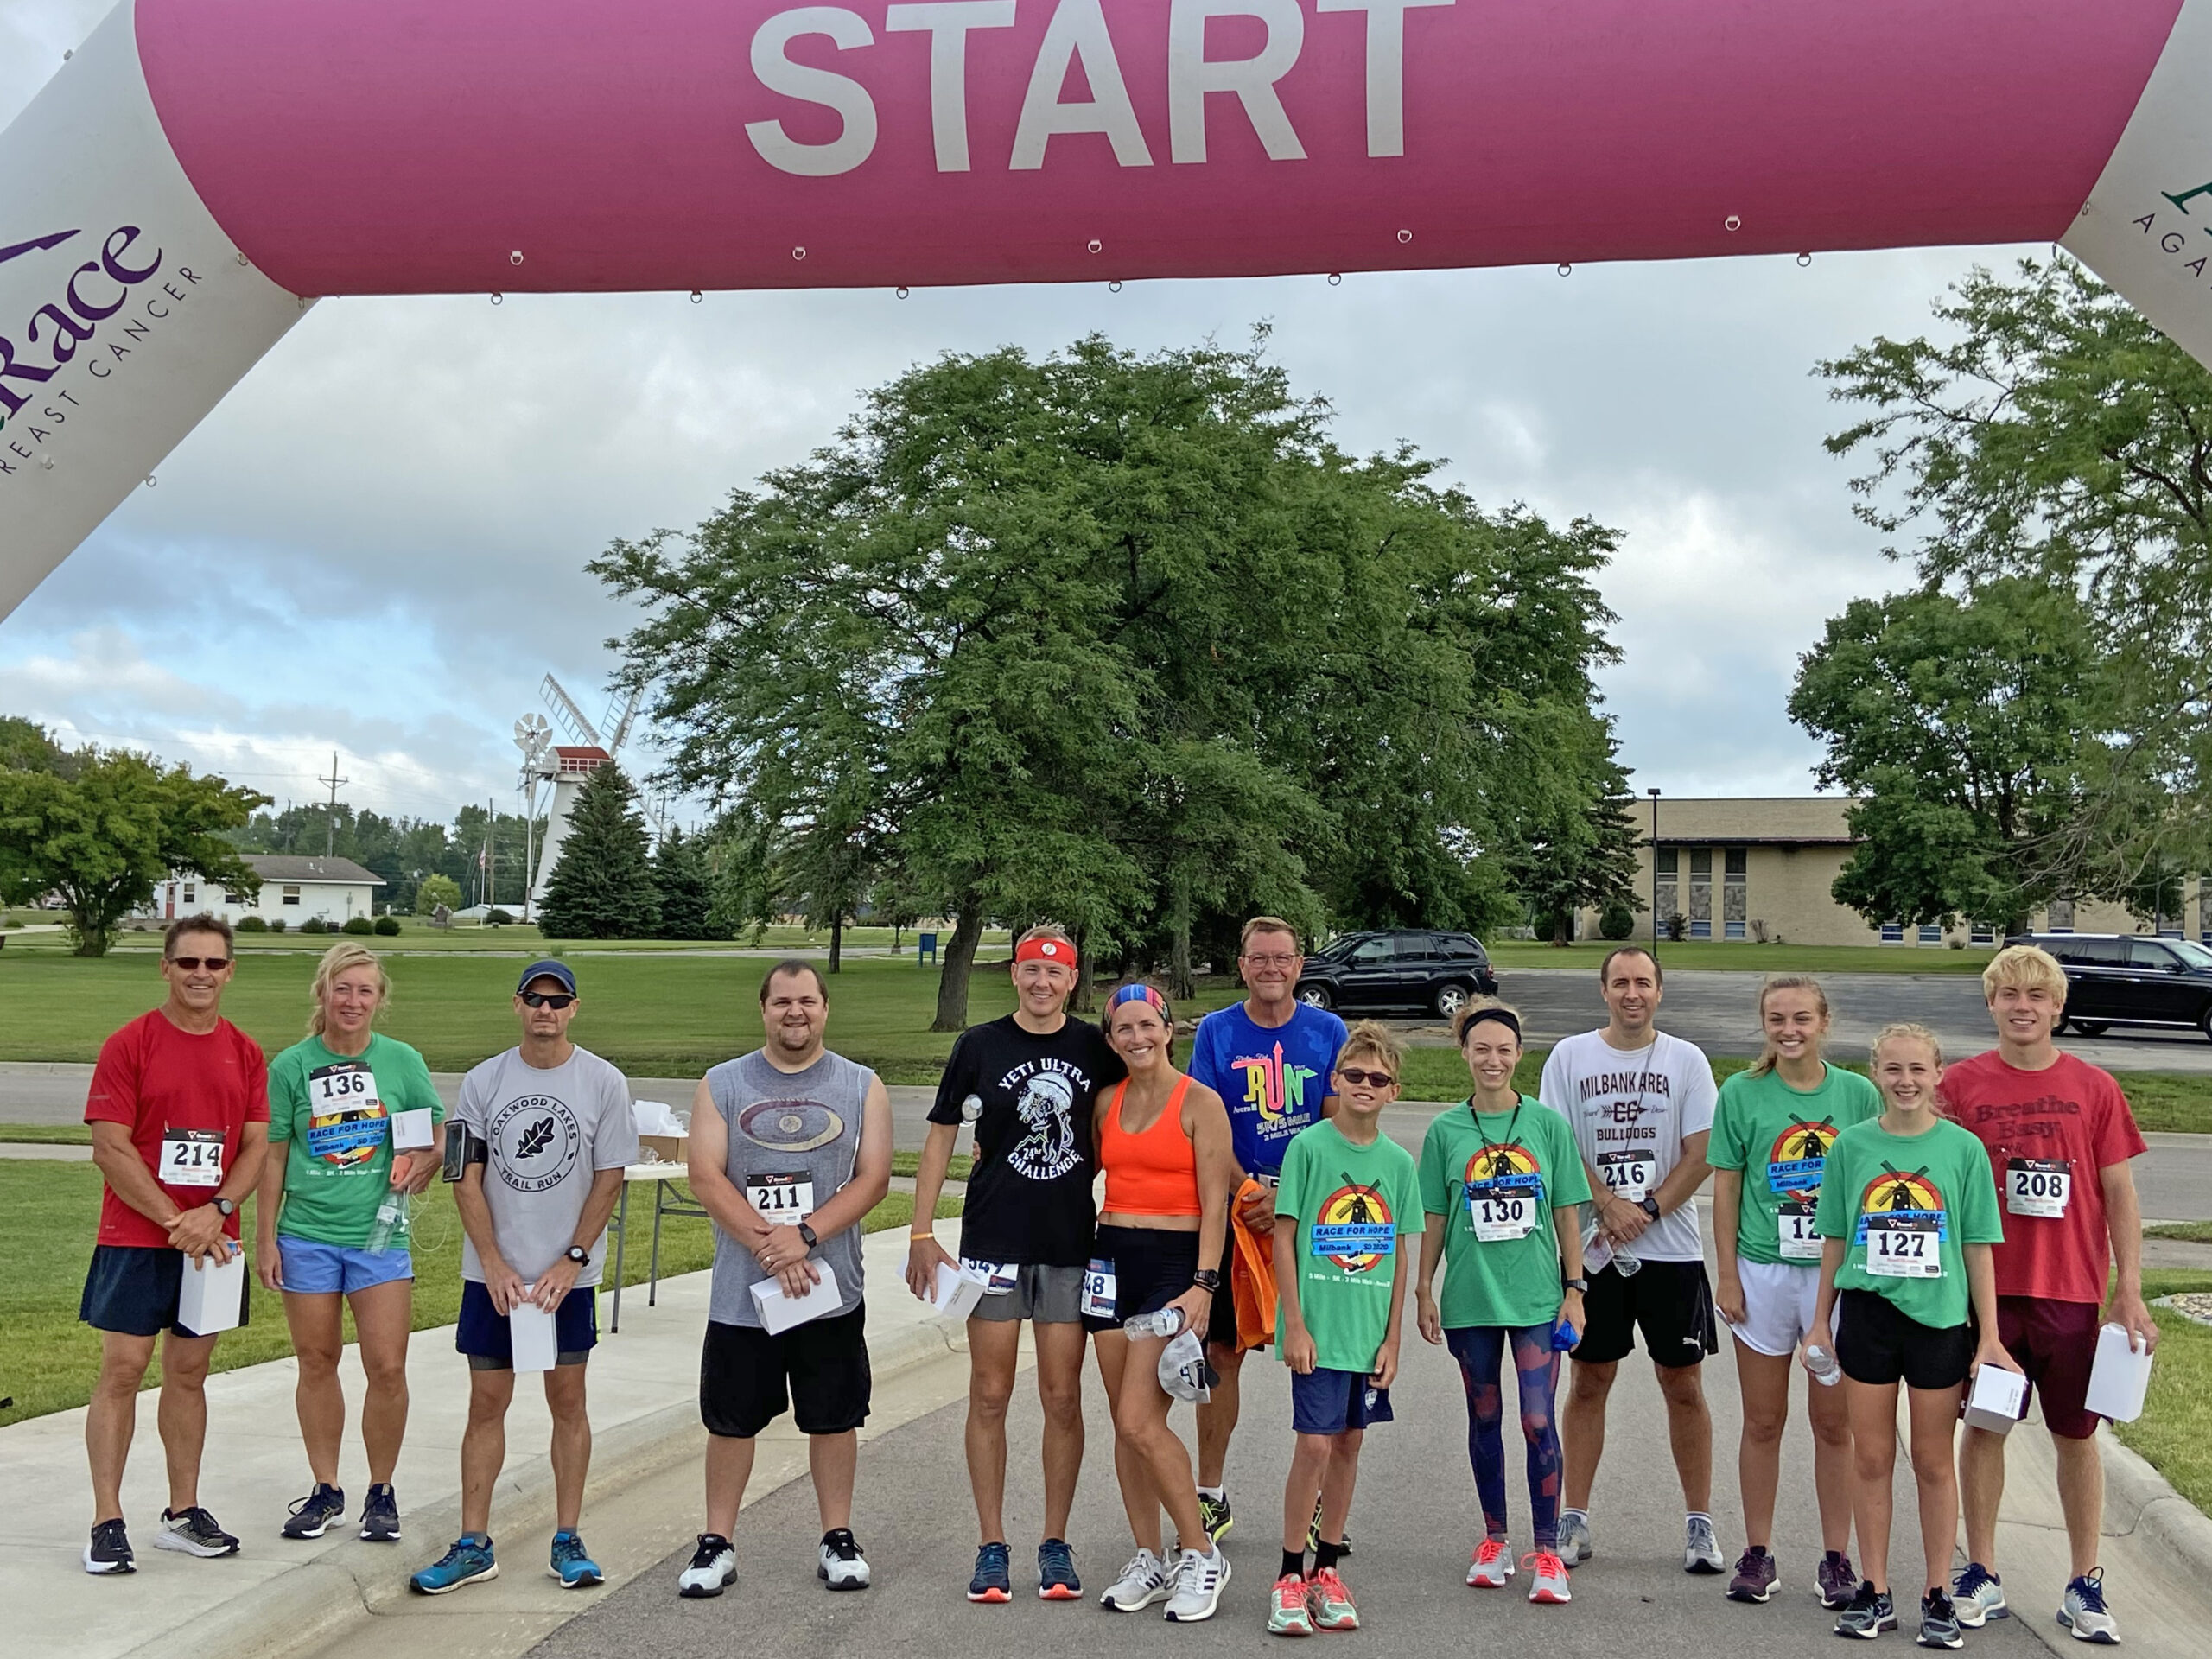 Winners Named at Avera Race Against Breast Cancer